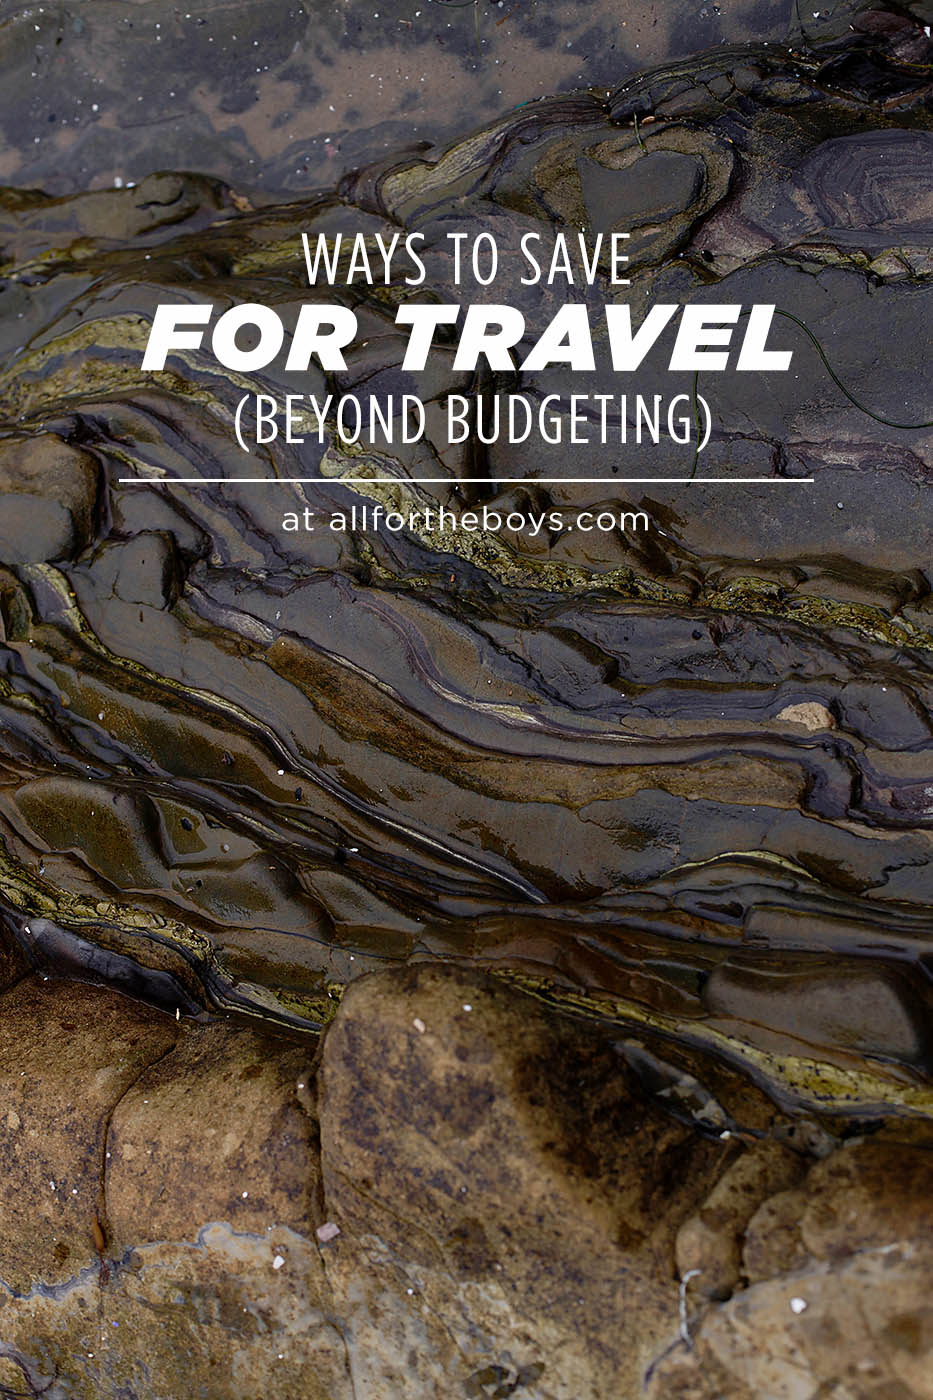 Ways to Save for Travel (beyond budgeting)